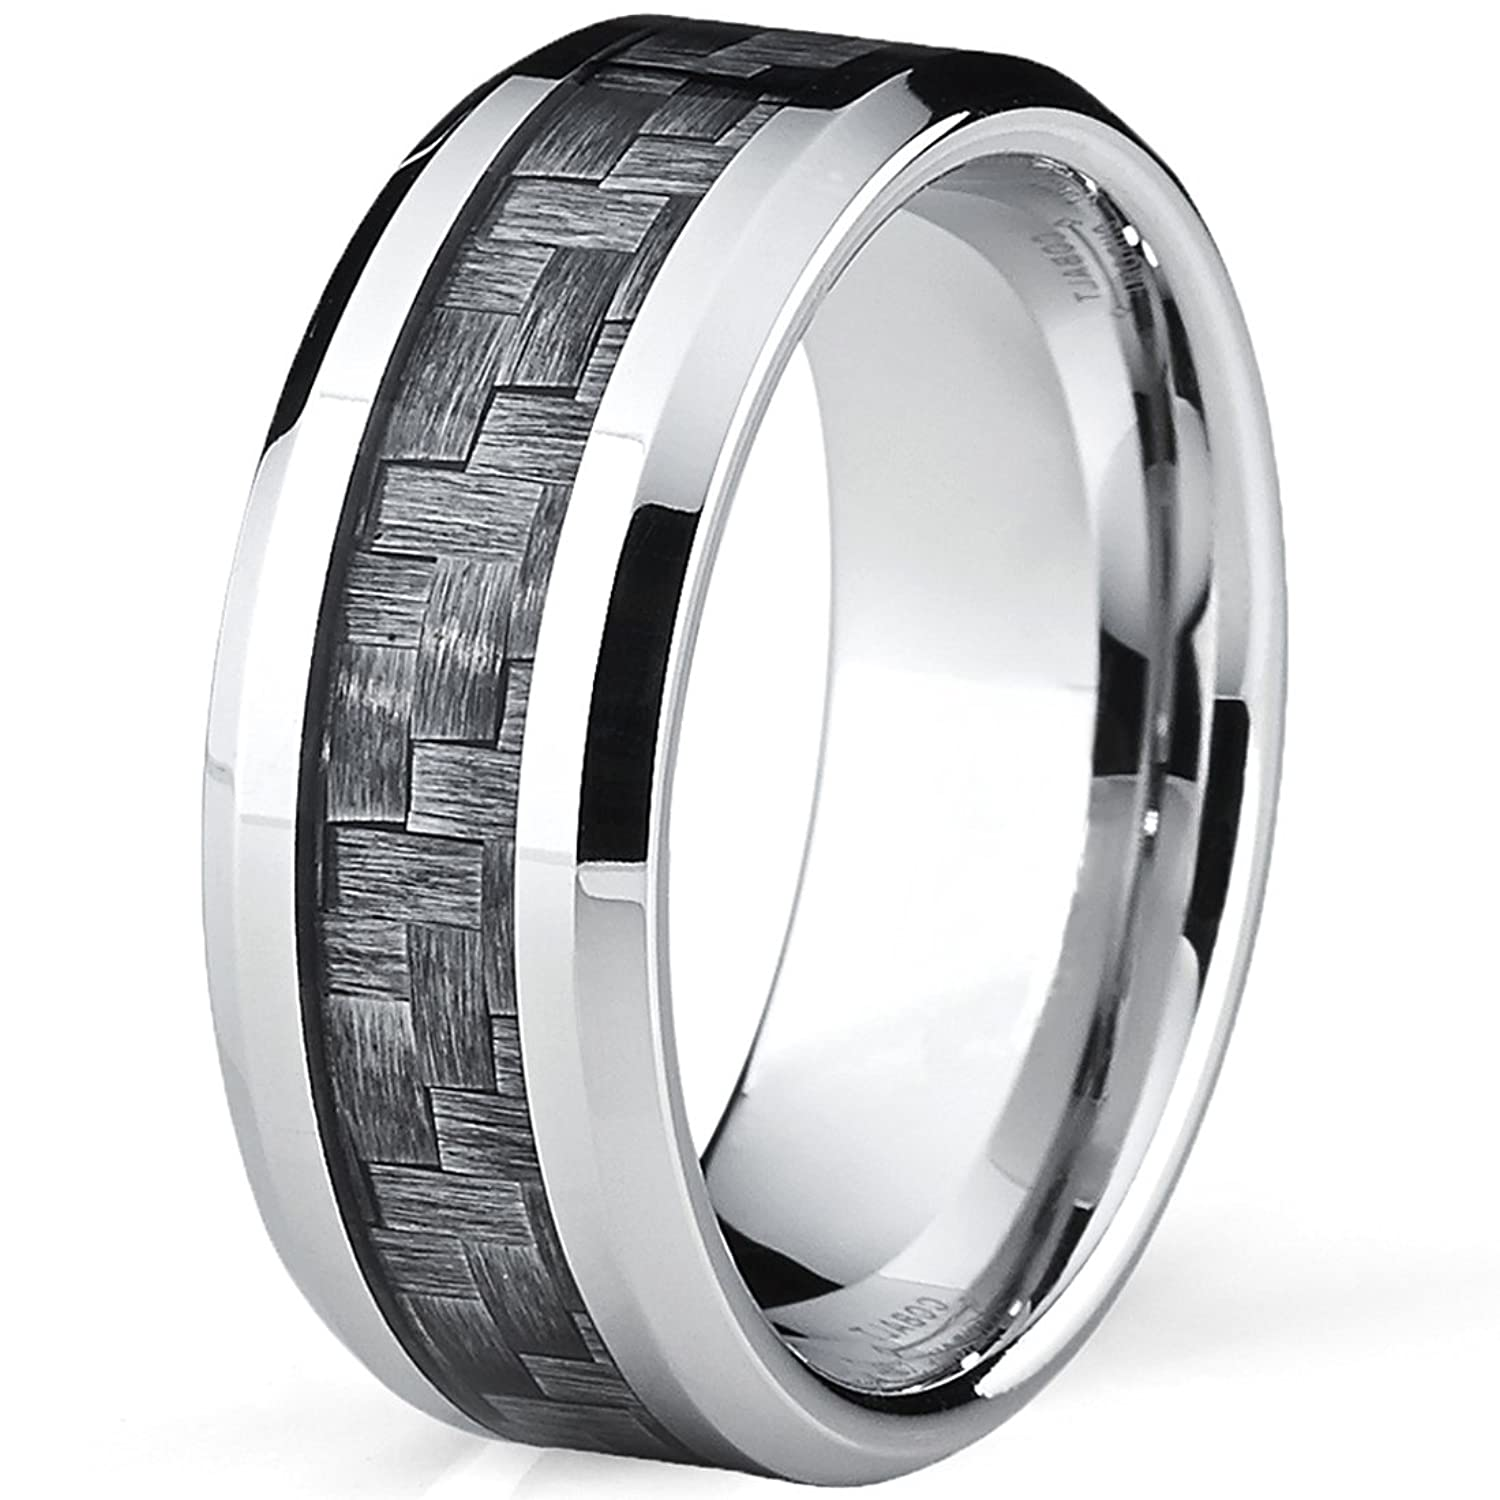 see rings fiber carbide product larger tungsten carbon black inlay jewelry tusen men s image wedding